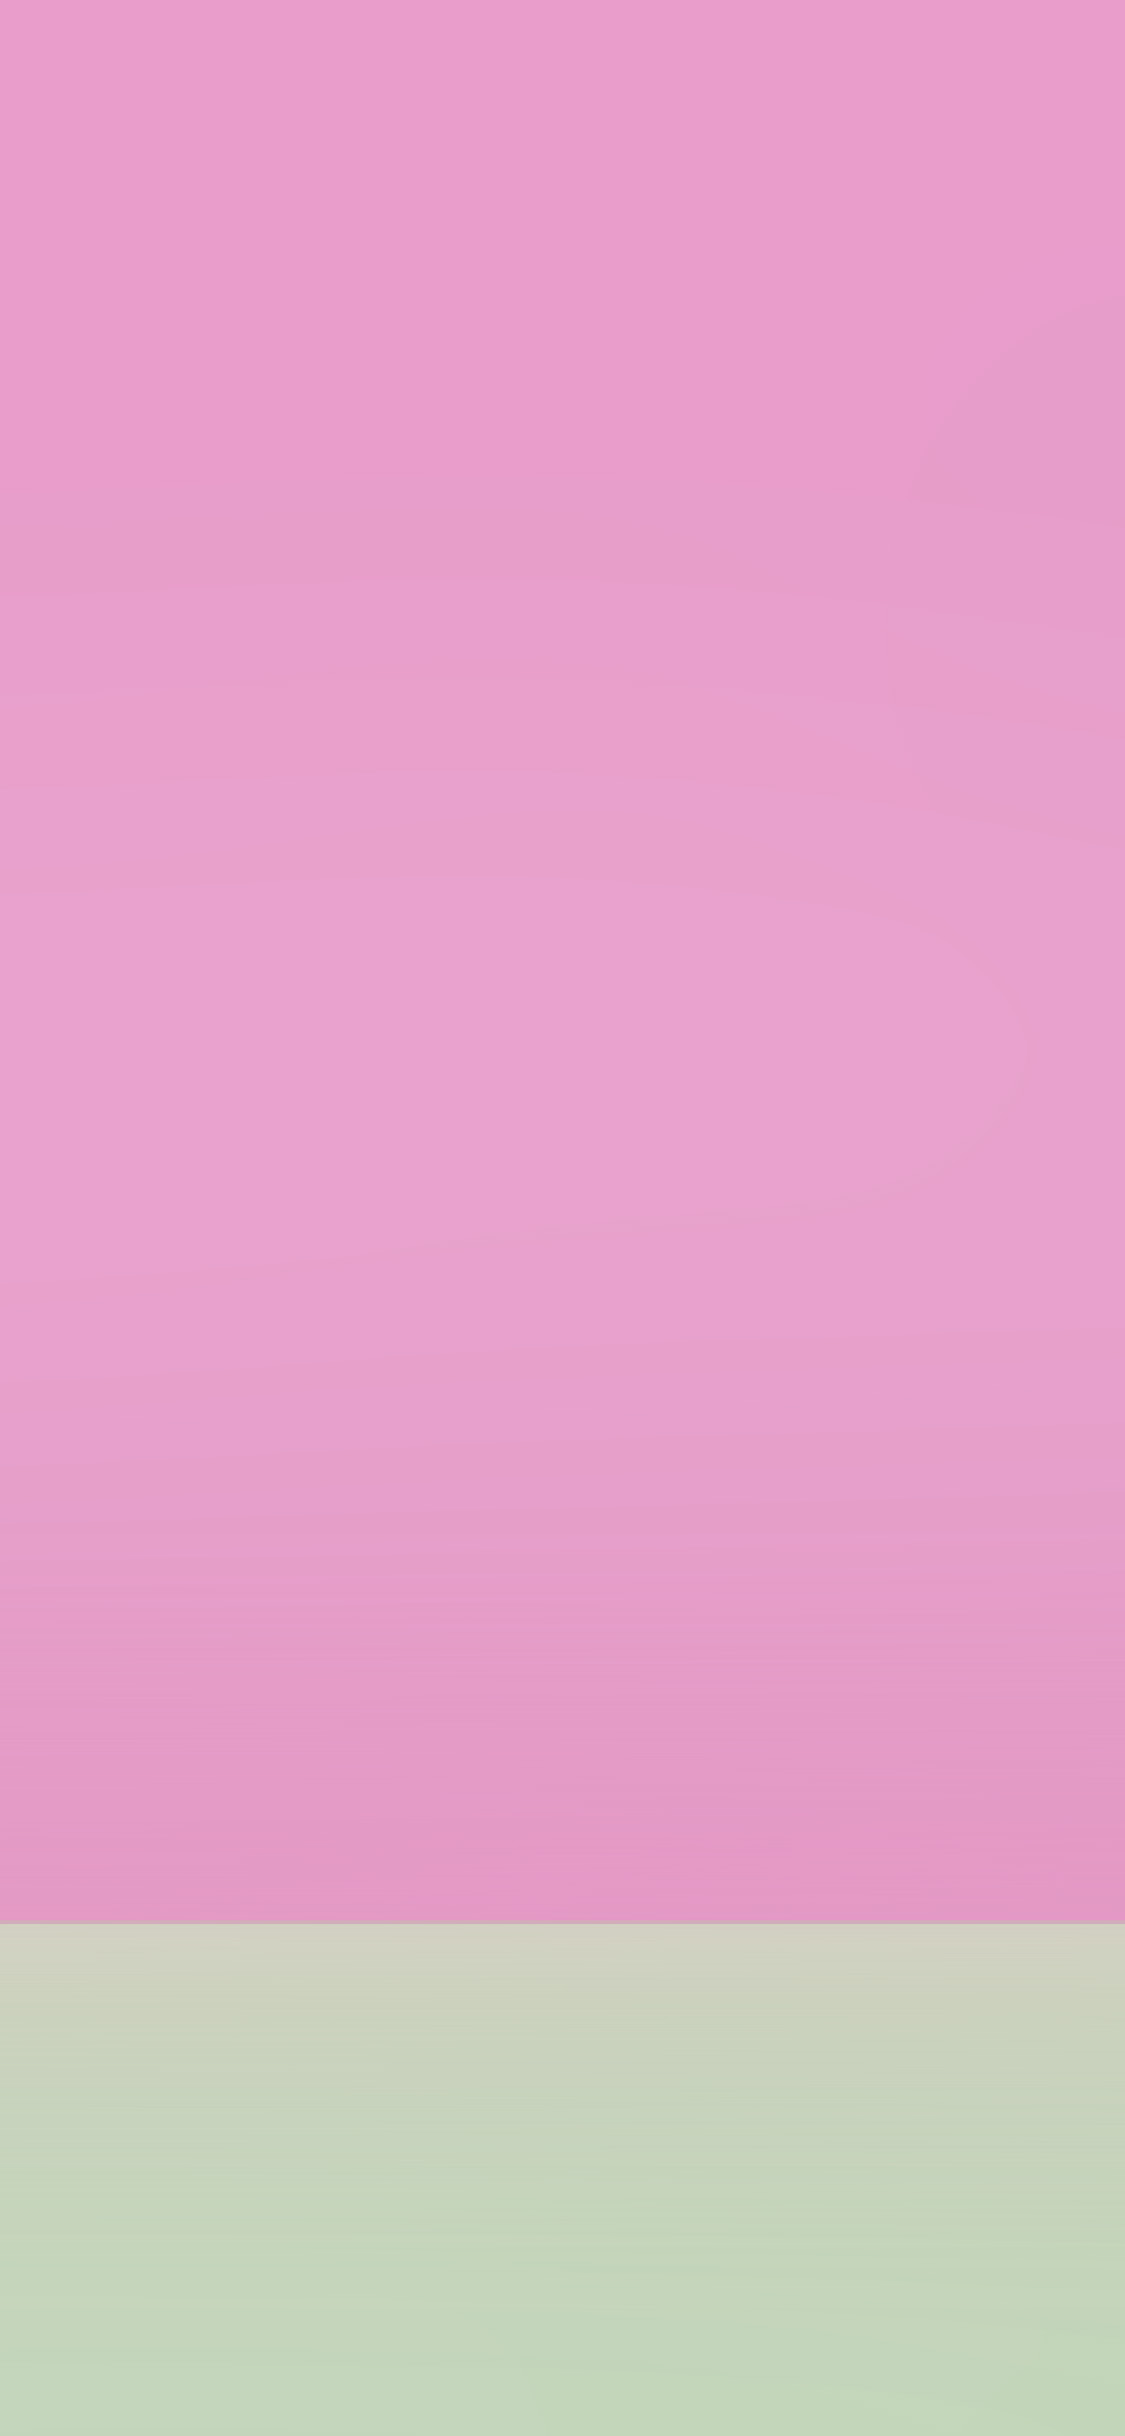 Iphonexpapers Com Iphone X Wallpaper Sn35 Flat Colorlovers Pink